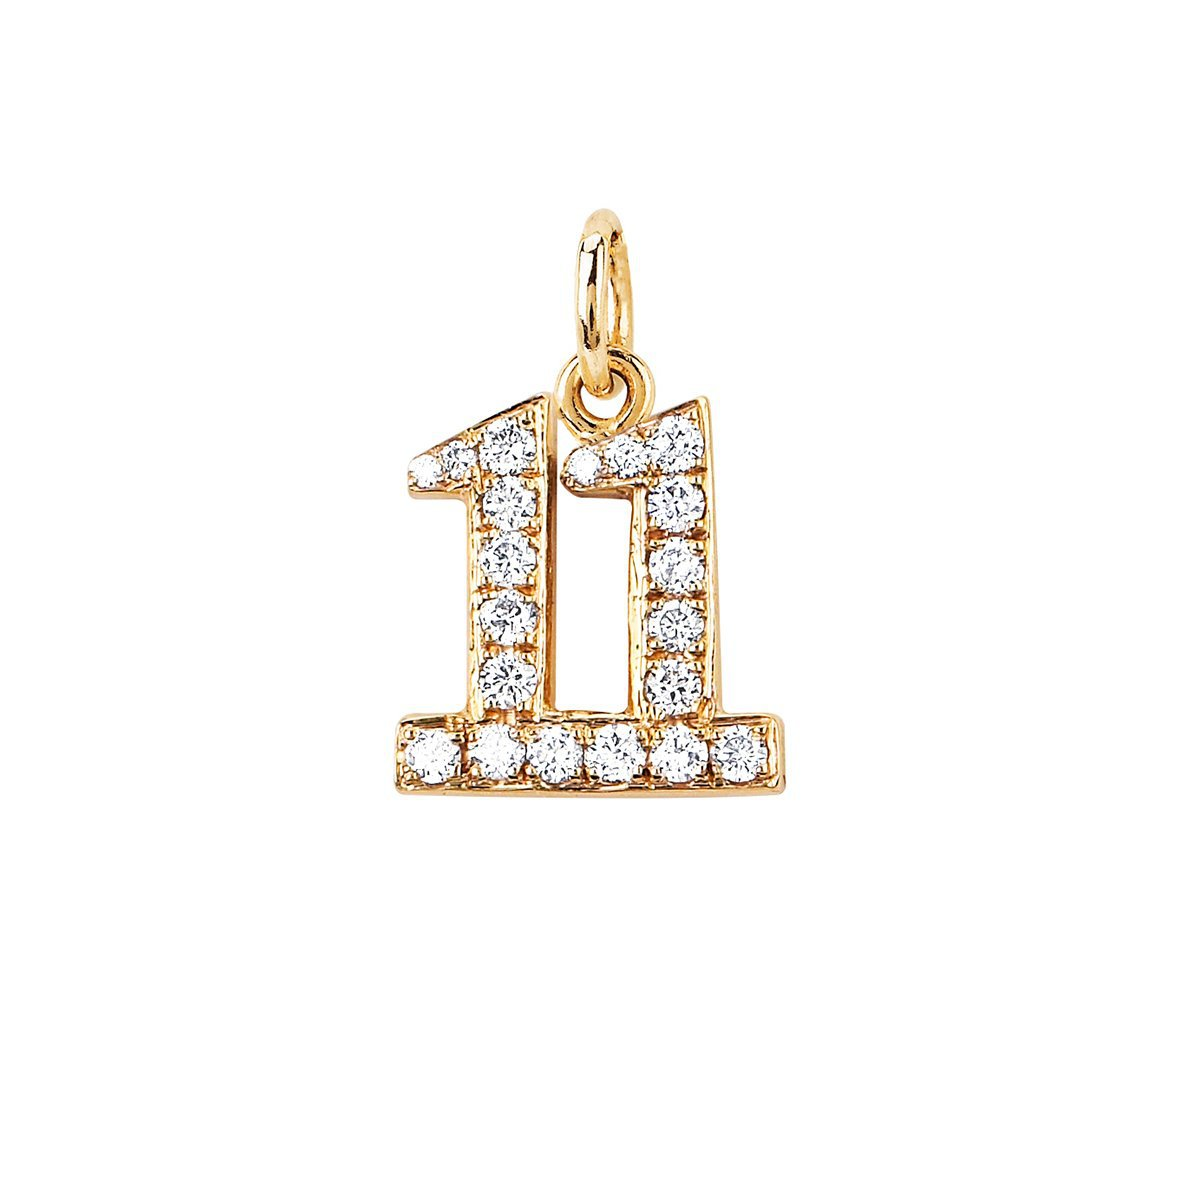 Numerology Charm with Pavé Diamonds